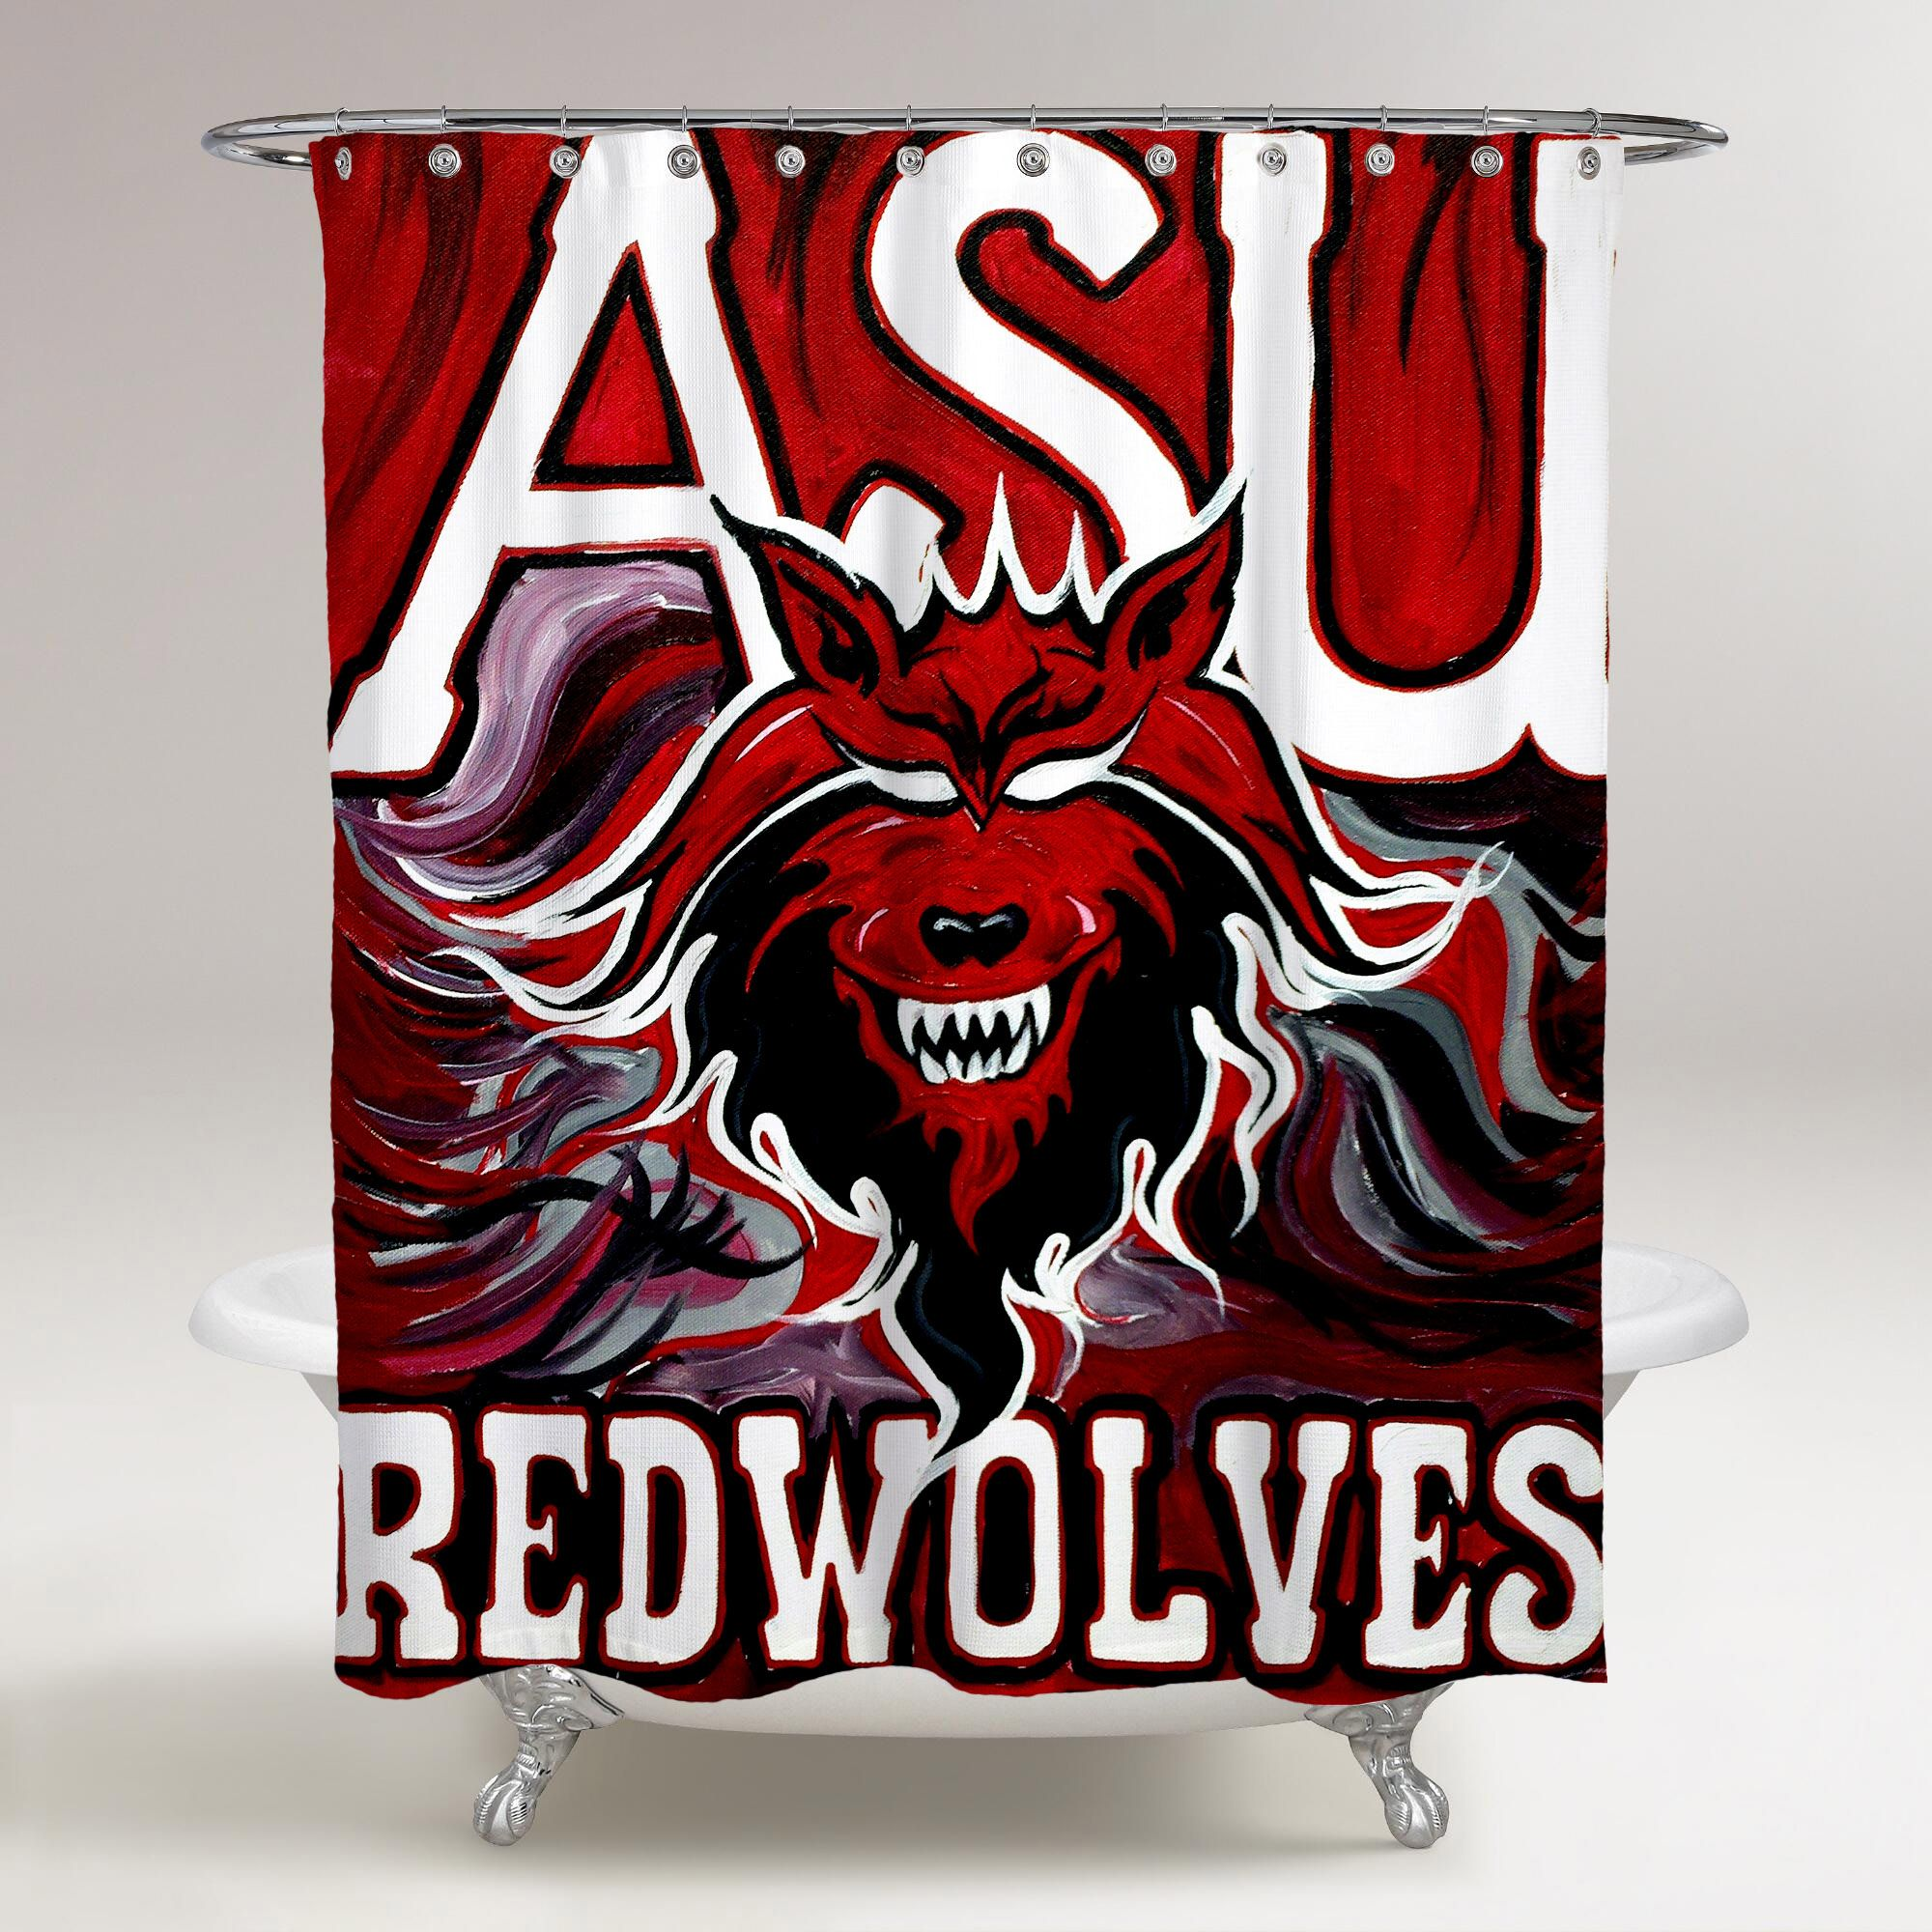 Arkansas State Red Wolves Logo Wolves Asu Wallpaper Red Background Printed Shower Curtain Bathroom Decor Red Wolf Bathroom Shower Curtains Wolf Bathroom Decor